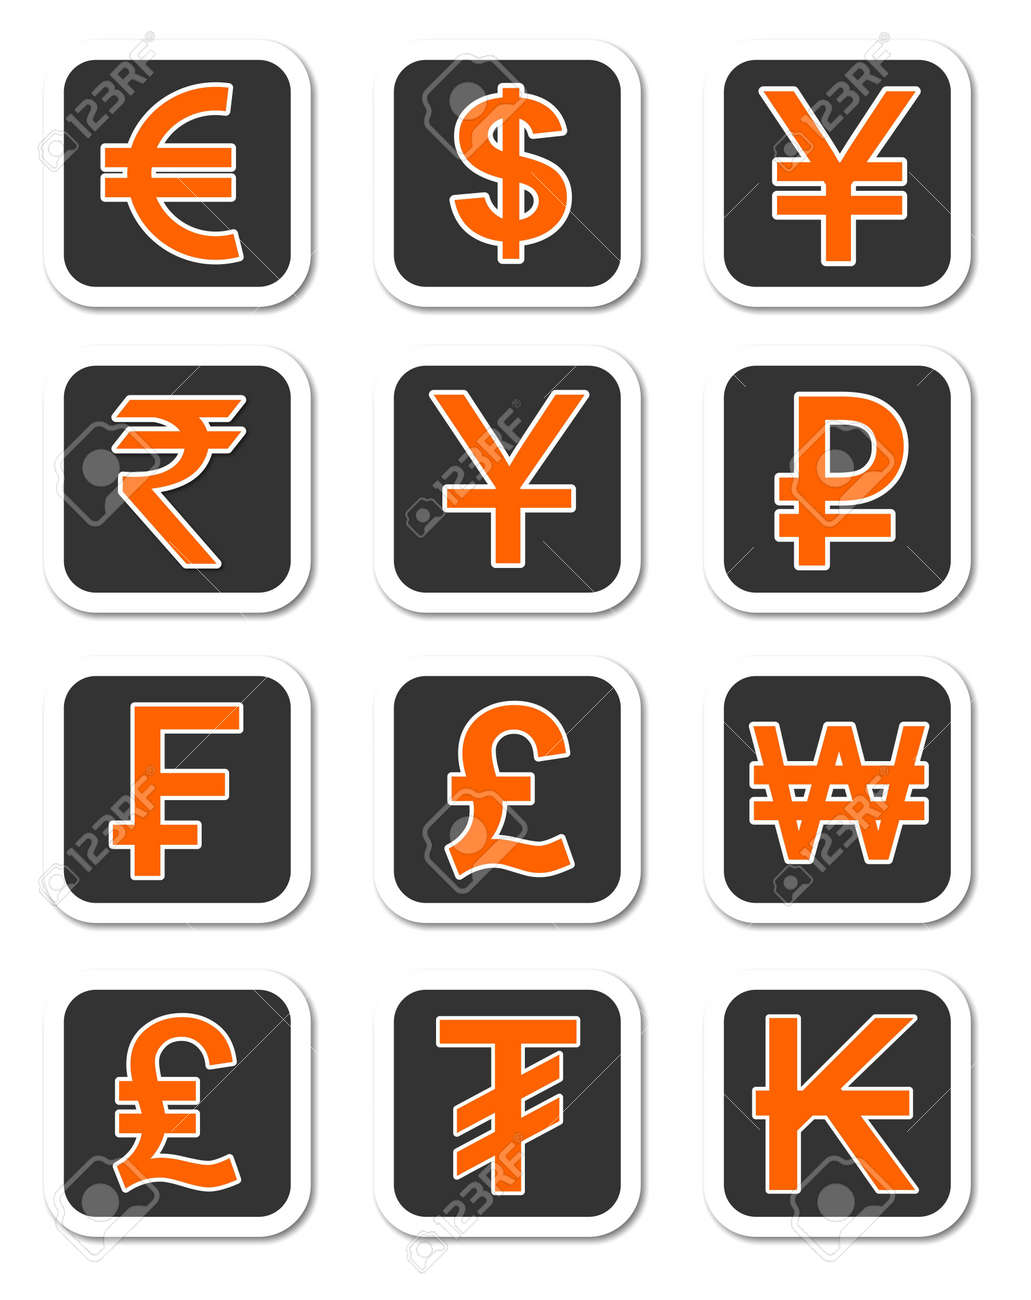 An Illustration Of Major Currency Symbols Of Different Countries